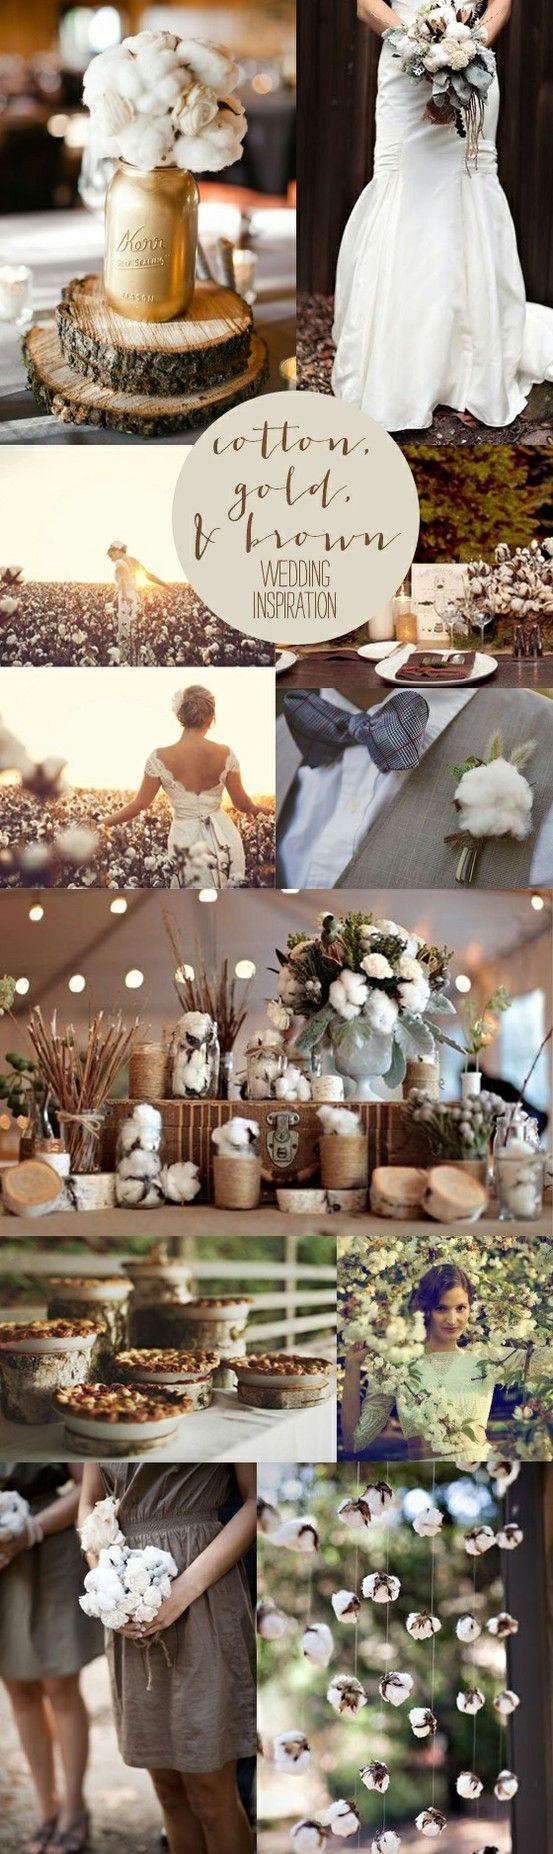 Mariage - mariage d'or